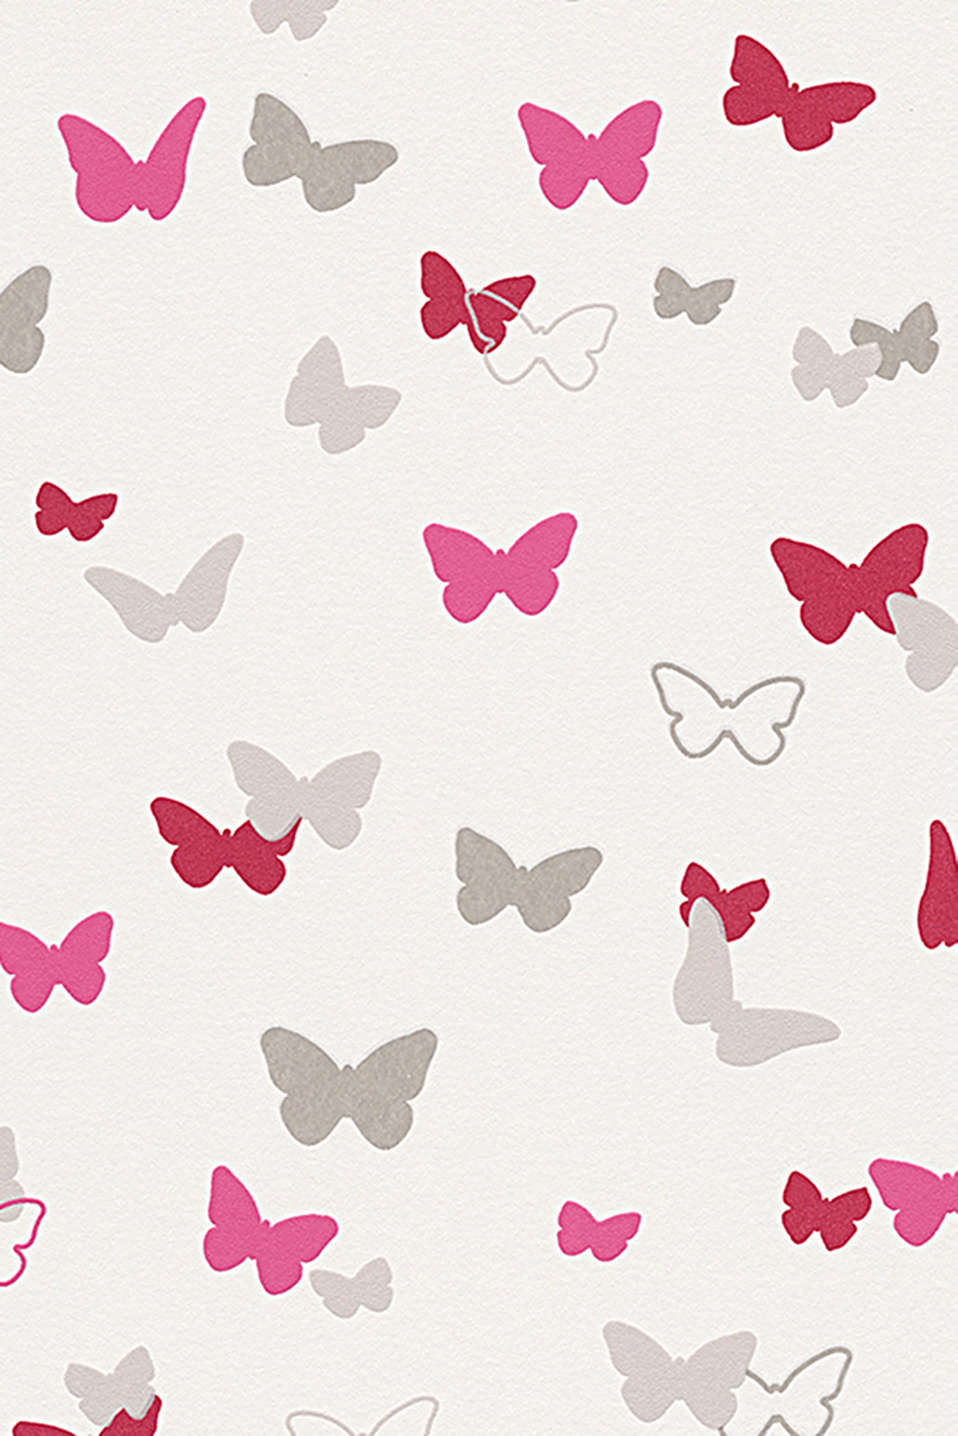 With bright butterfly motifs